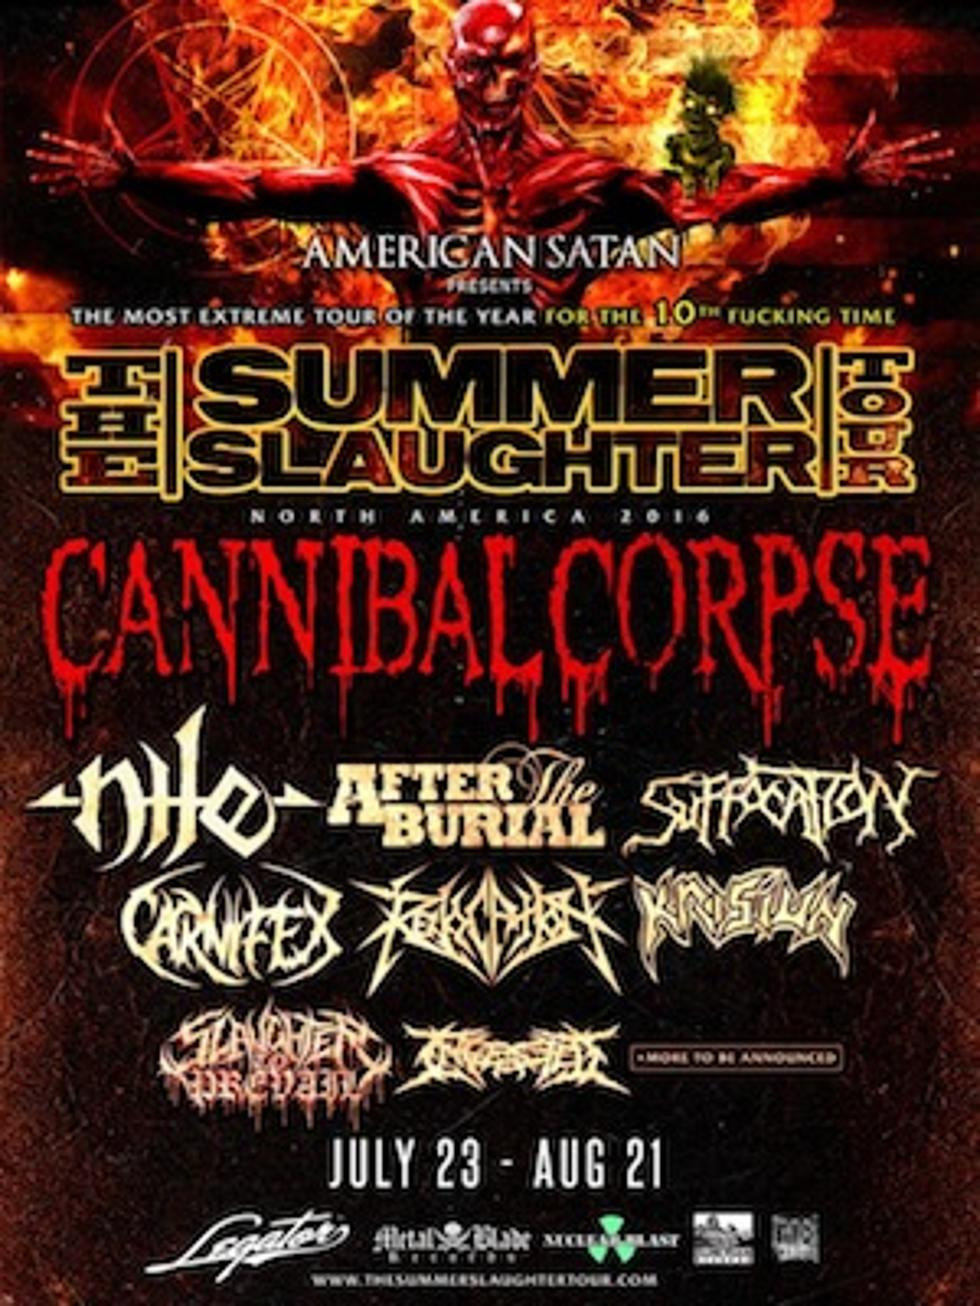 Summer Slaughter 2020.Cannibal Corpse Nile Lead 2016 Summer Slaughter Lineup